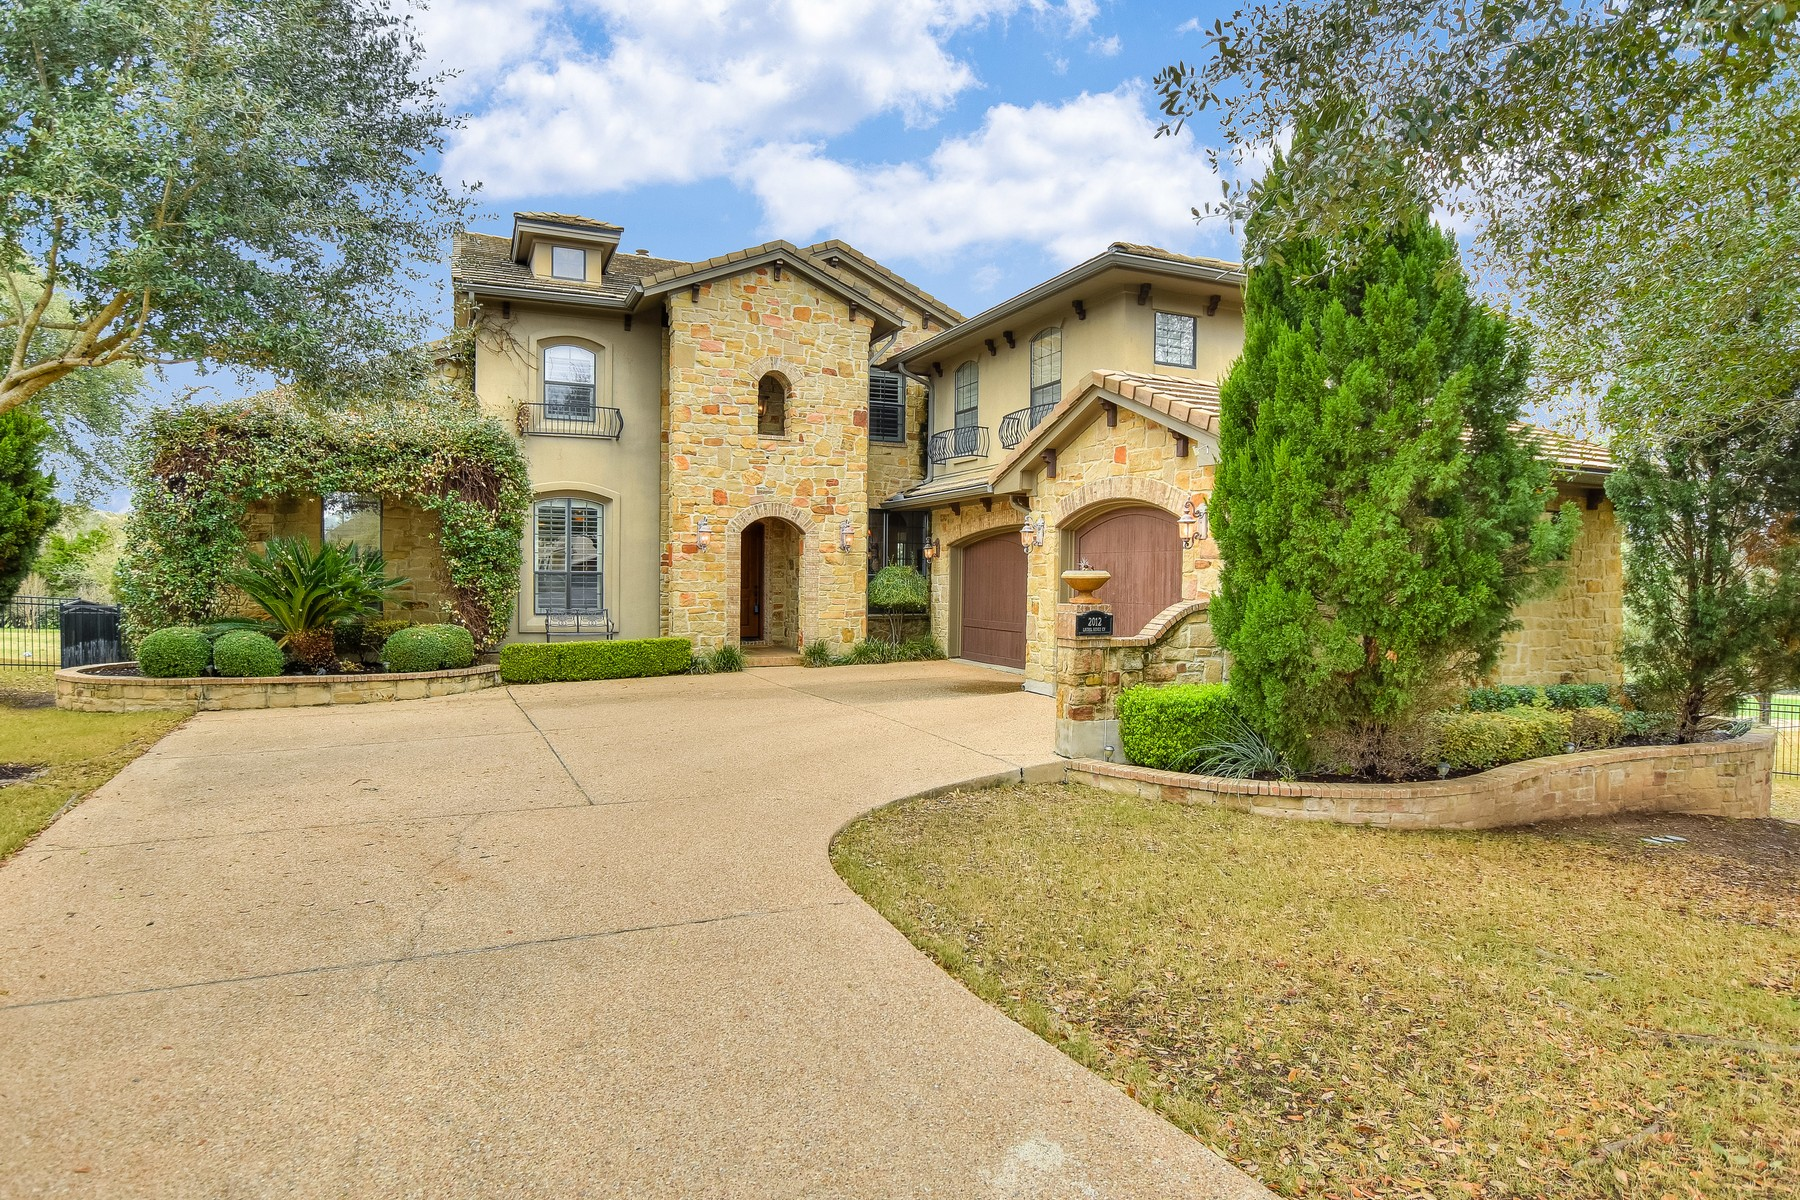 Single Family Home for Sale at Overlooking the 11th Fairway of UT Golf Club 2012 Laurel Ridge Cv Austin, Texas, 78732 United States